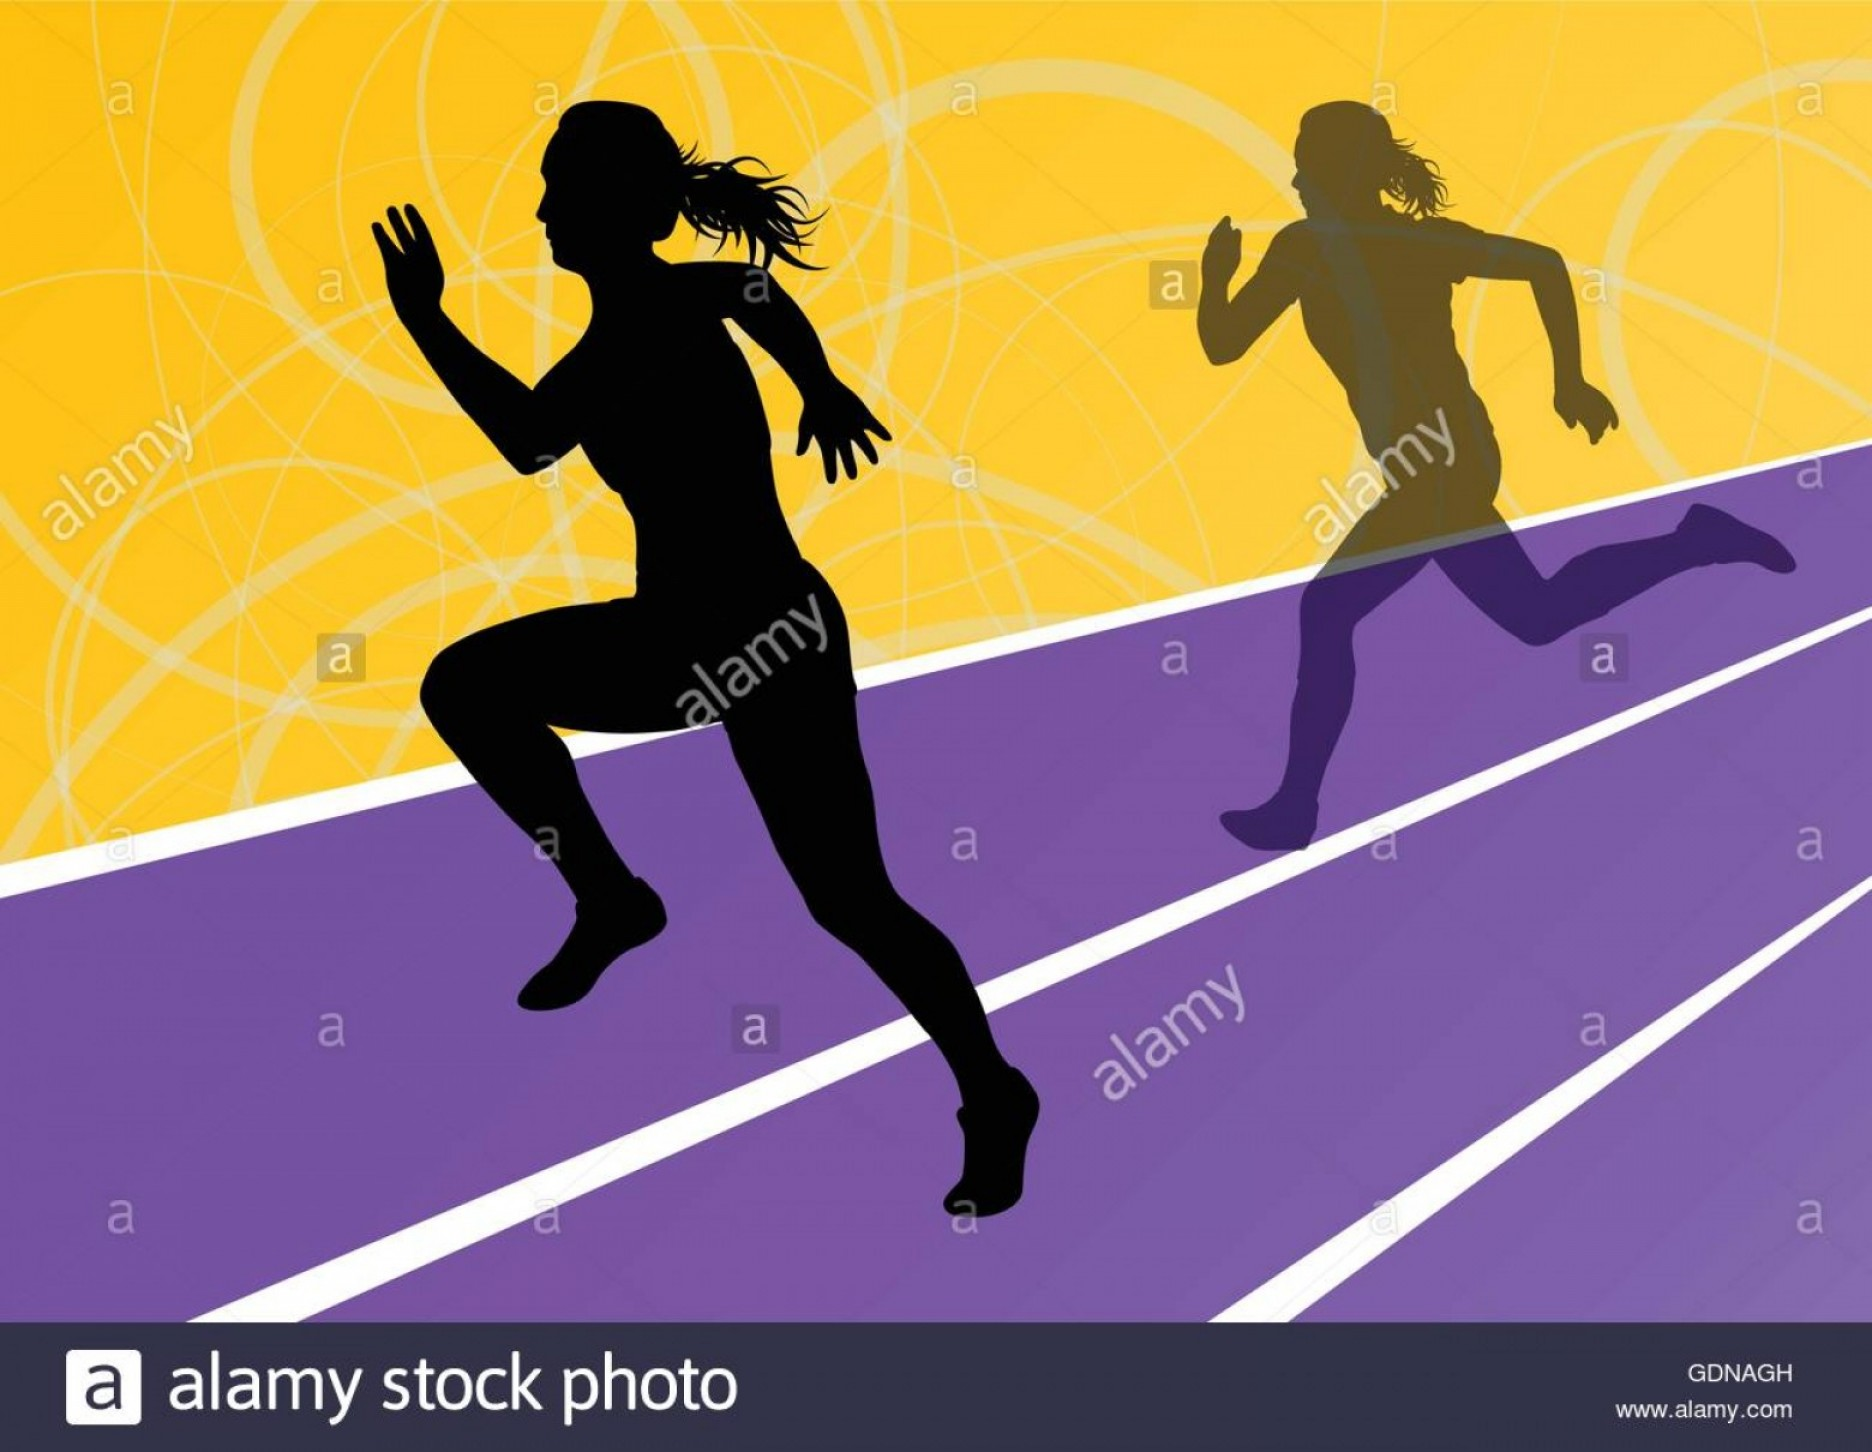 Vector Silhouette Of Girl Running Track: Stock Photo Active Women Sport Athletics Running Silhouettes Illustration Abstract